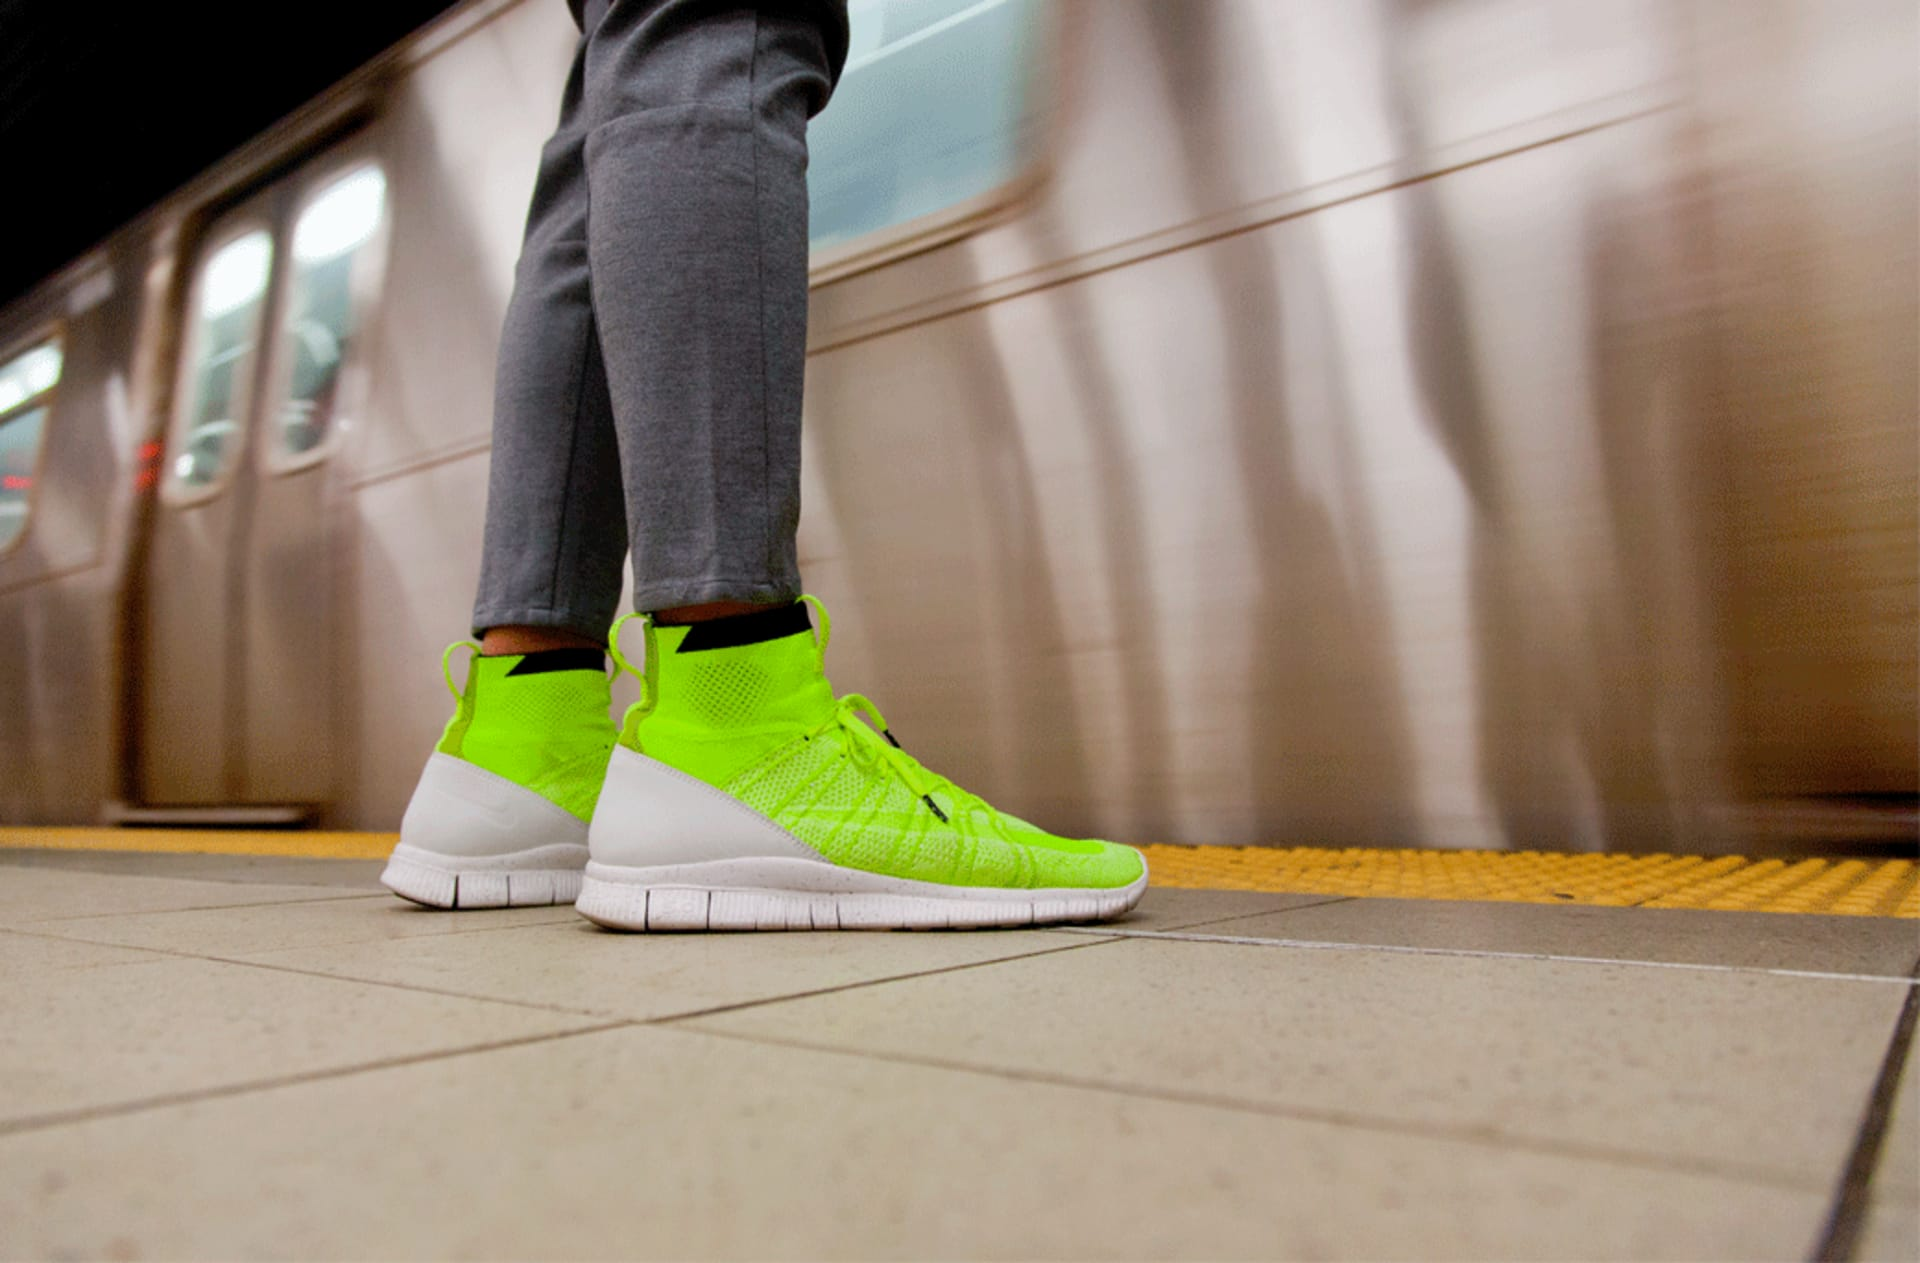 dbc5a12132ae Nike Flyknit Is the Most Stylish and Innovative Sneaker Technology Today